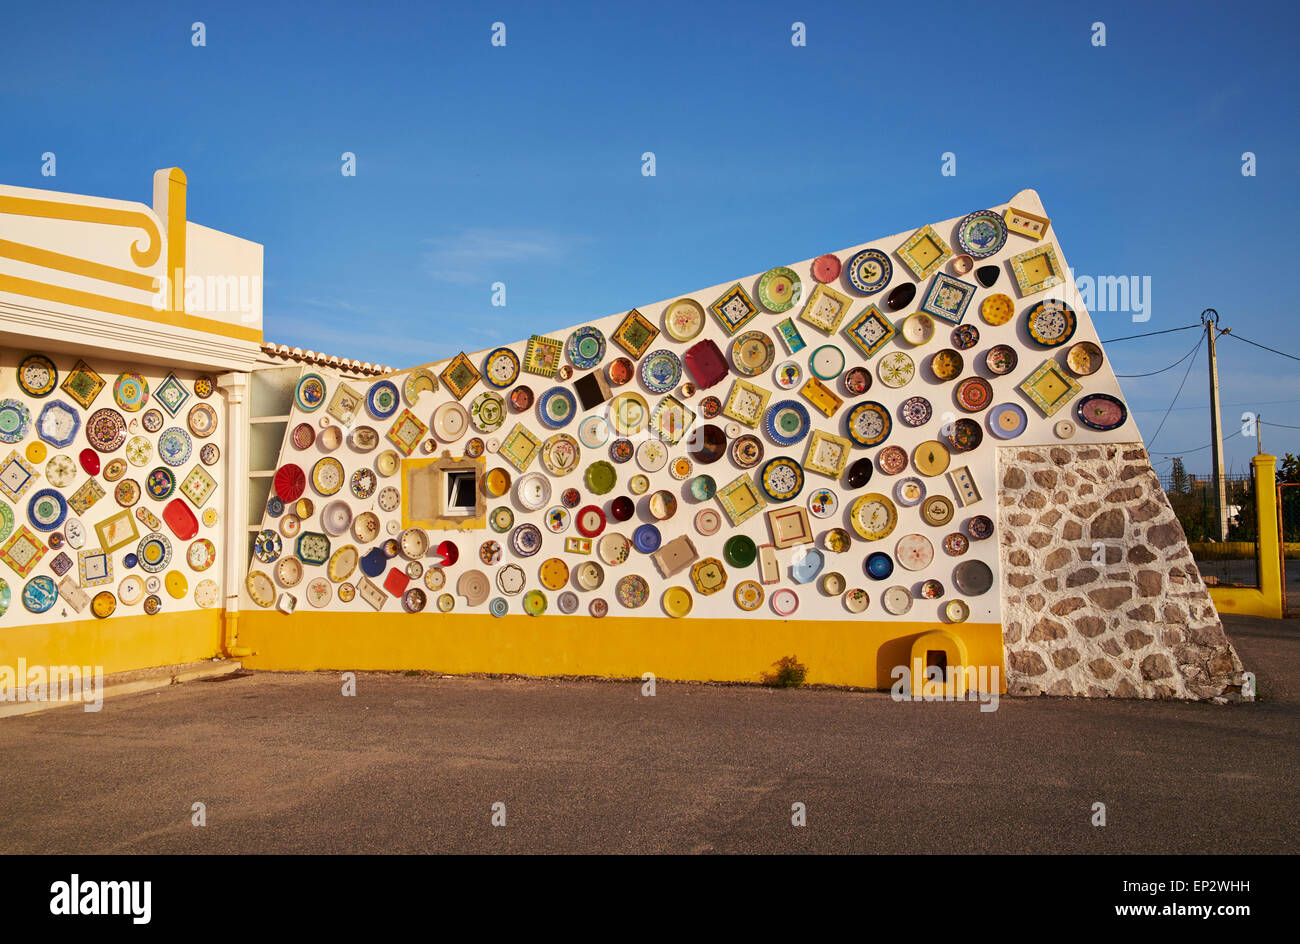 Argila Artesanato Onde Comprar ~ Portugal, Algarve, Sagres, wall with traditional Portuguese ceramics Stock Photo, Royalty Free